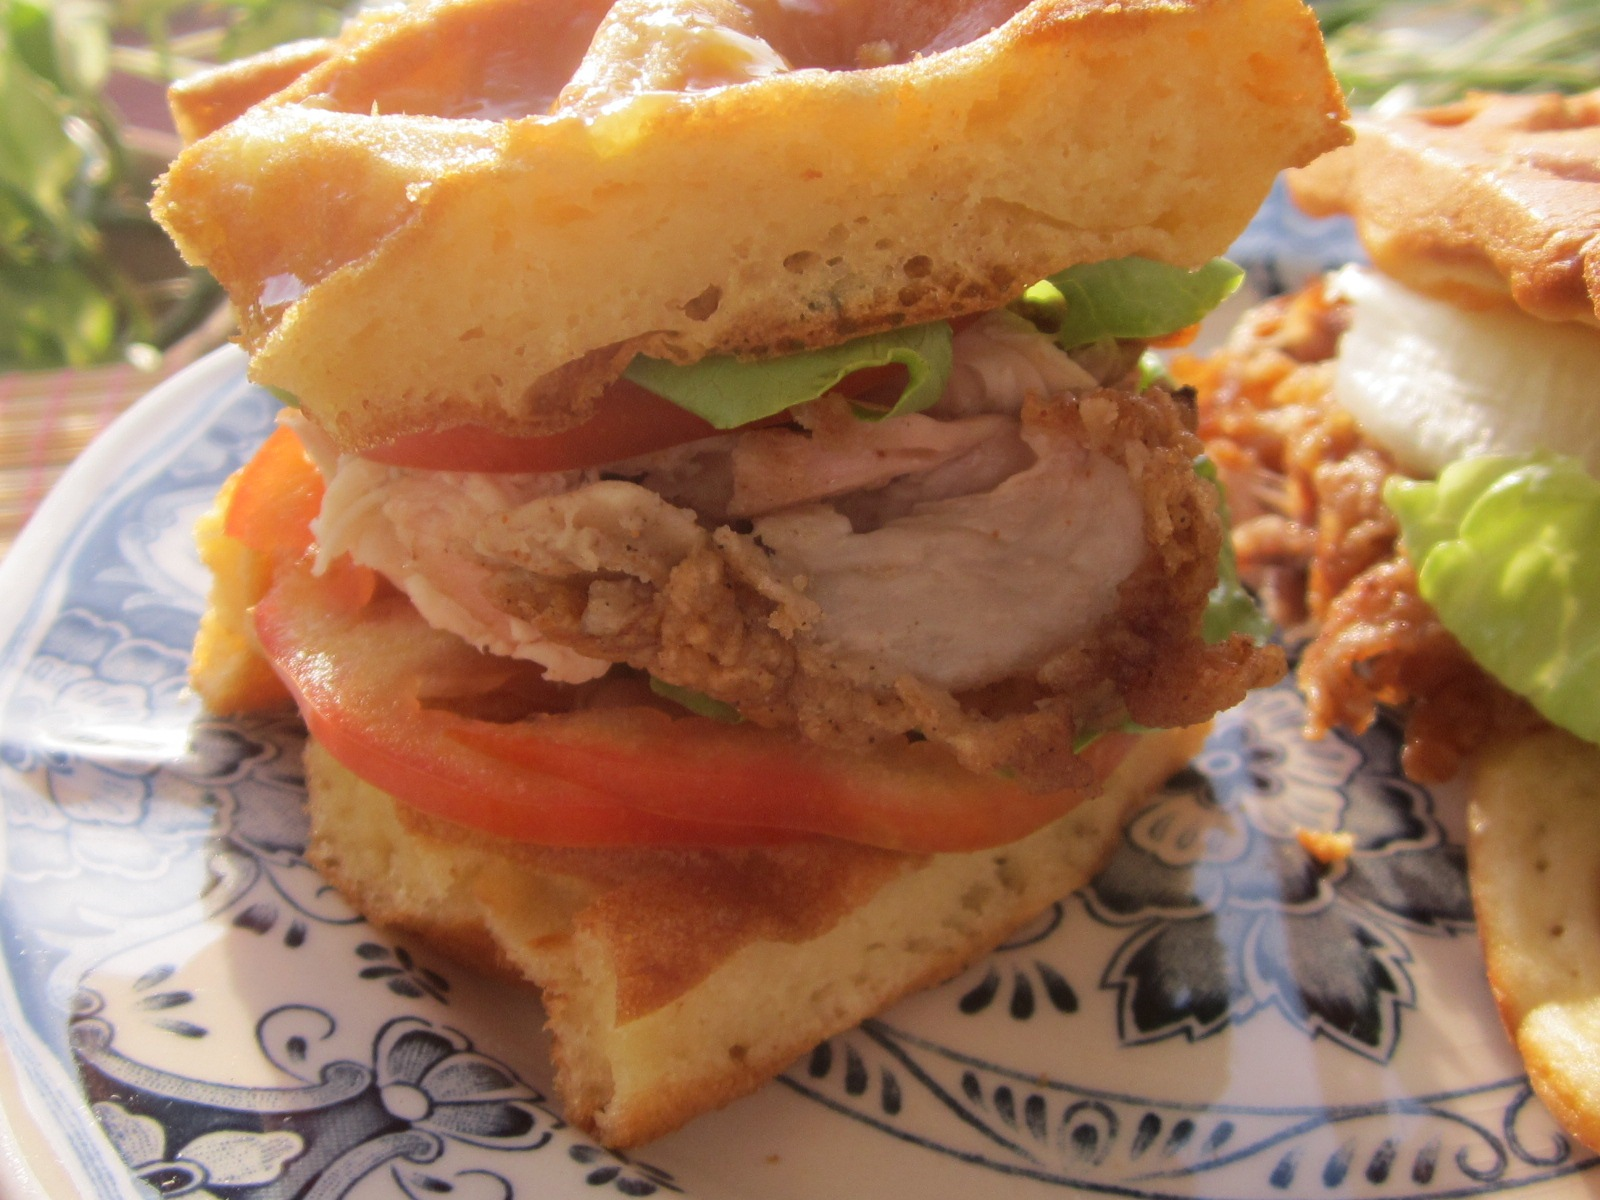 Waffle Sandwich with fried chicken and lemon sauce by amie